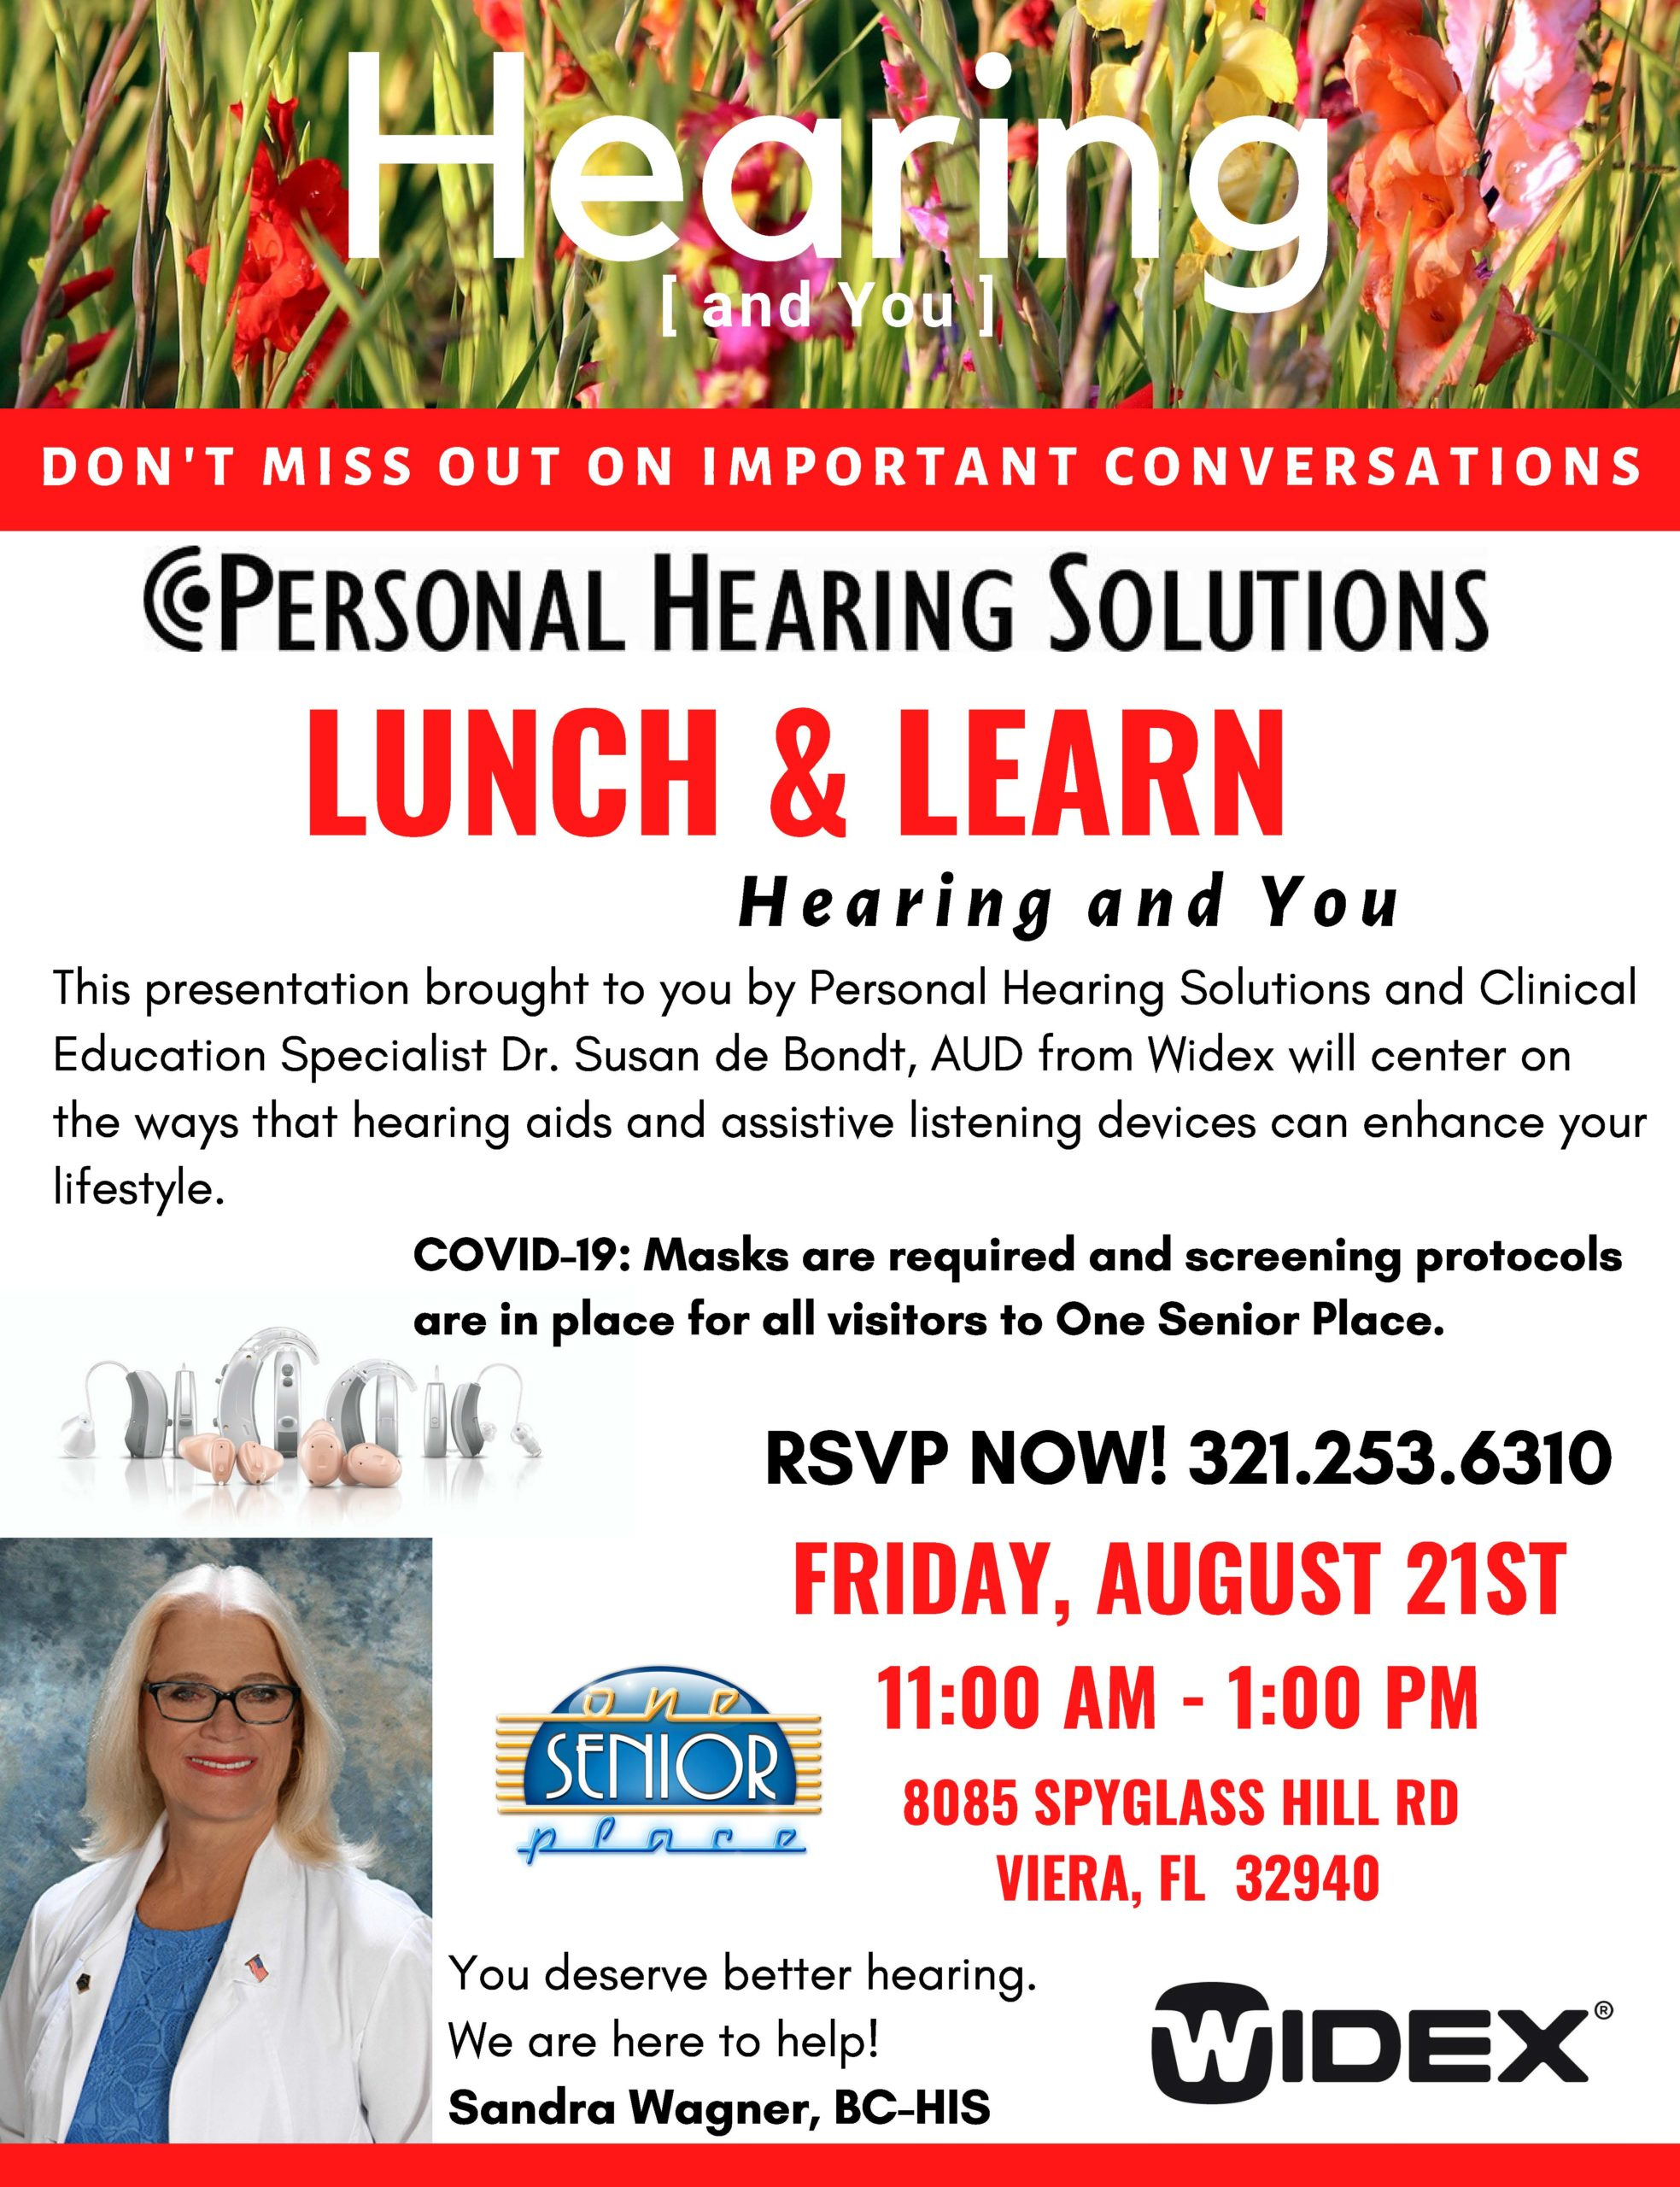 Hearing (and You) Lunch and Learn Seminar presented by Personal Hearing Solutions